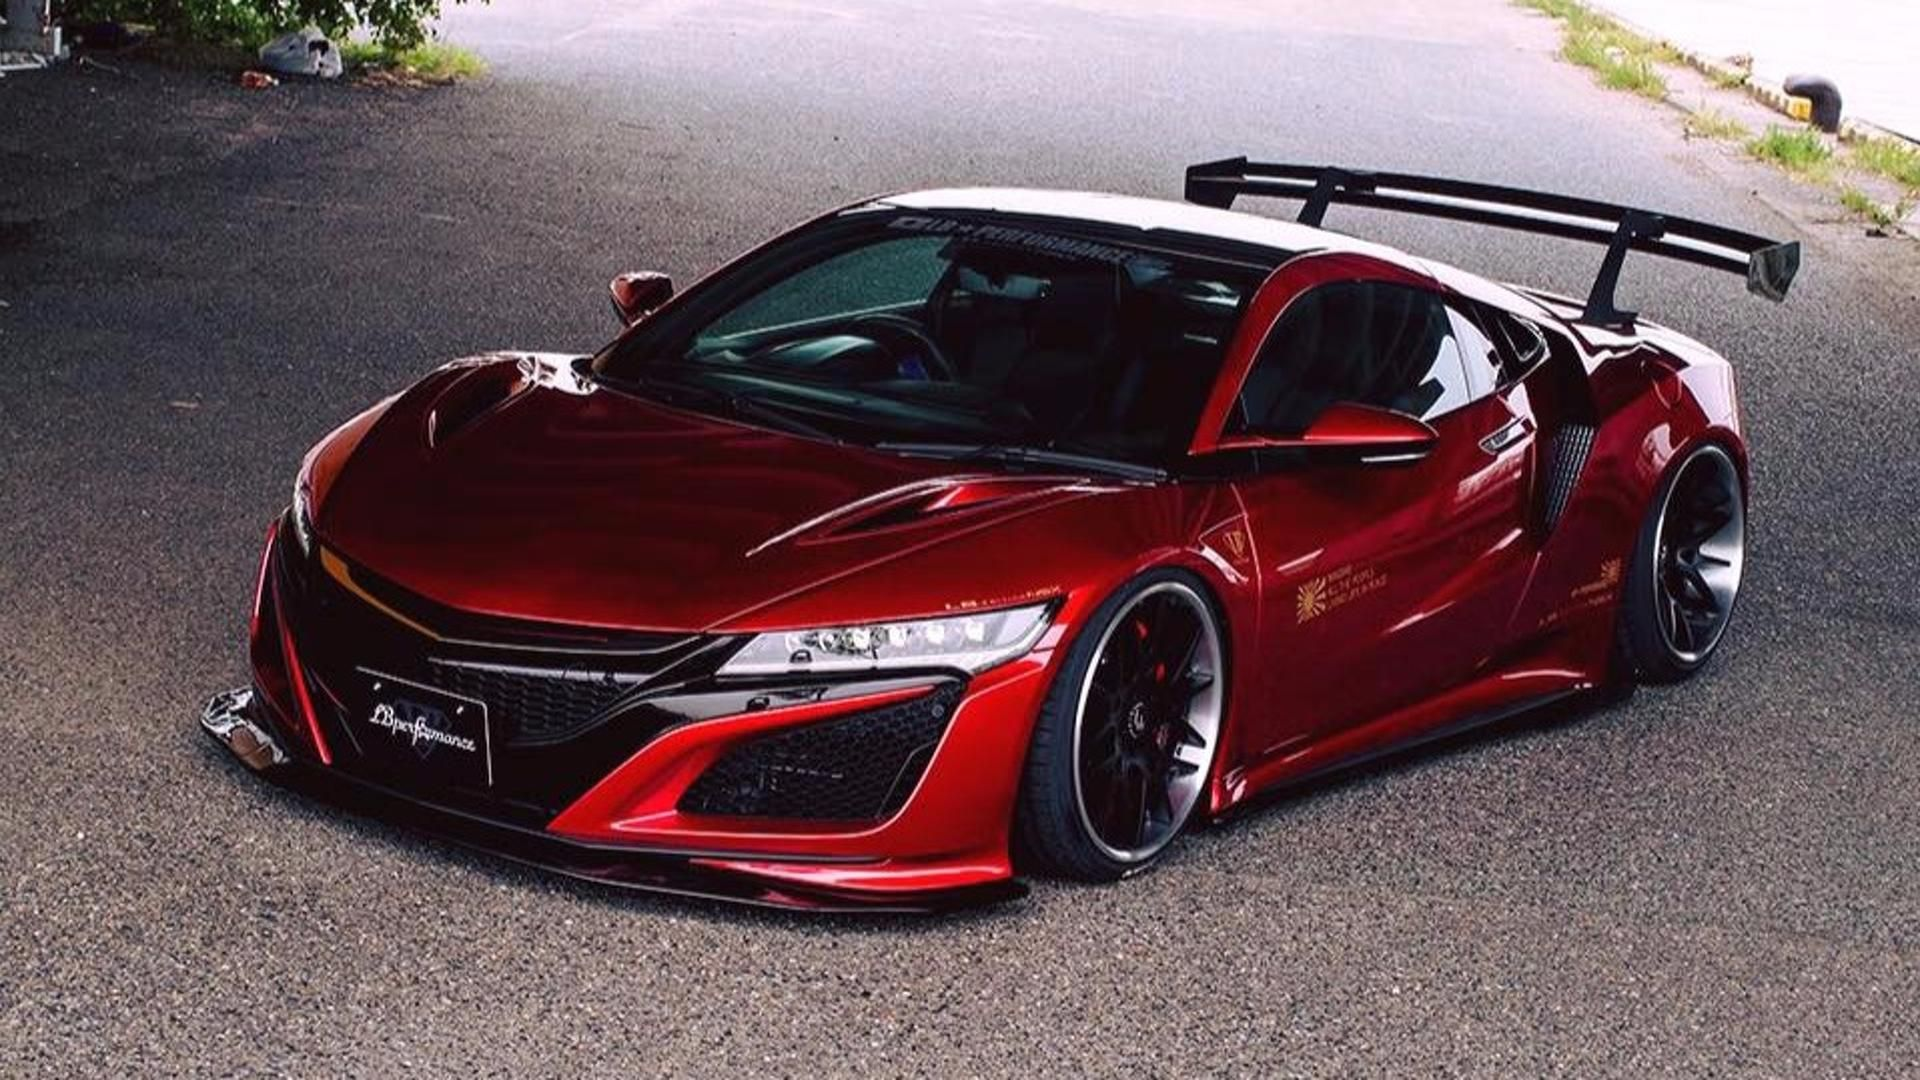 Pin By Alex On Cars Nsx Small Luxury Cars Honda Cars